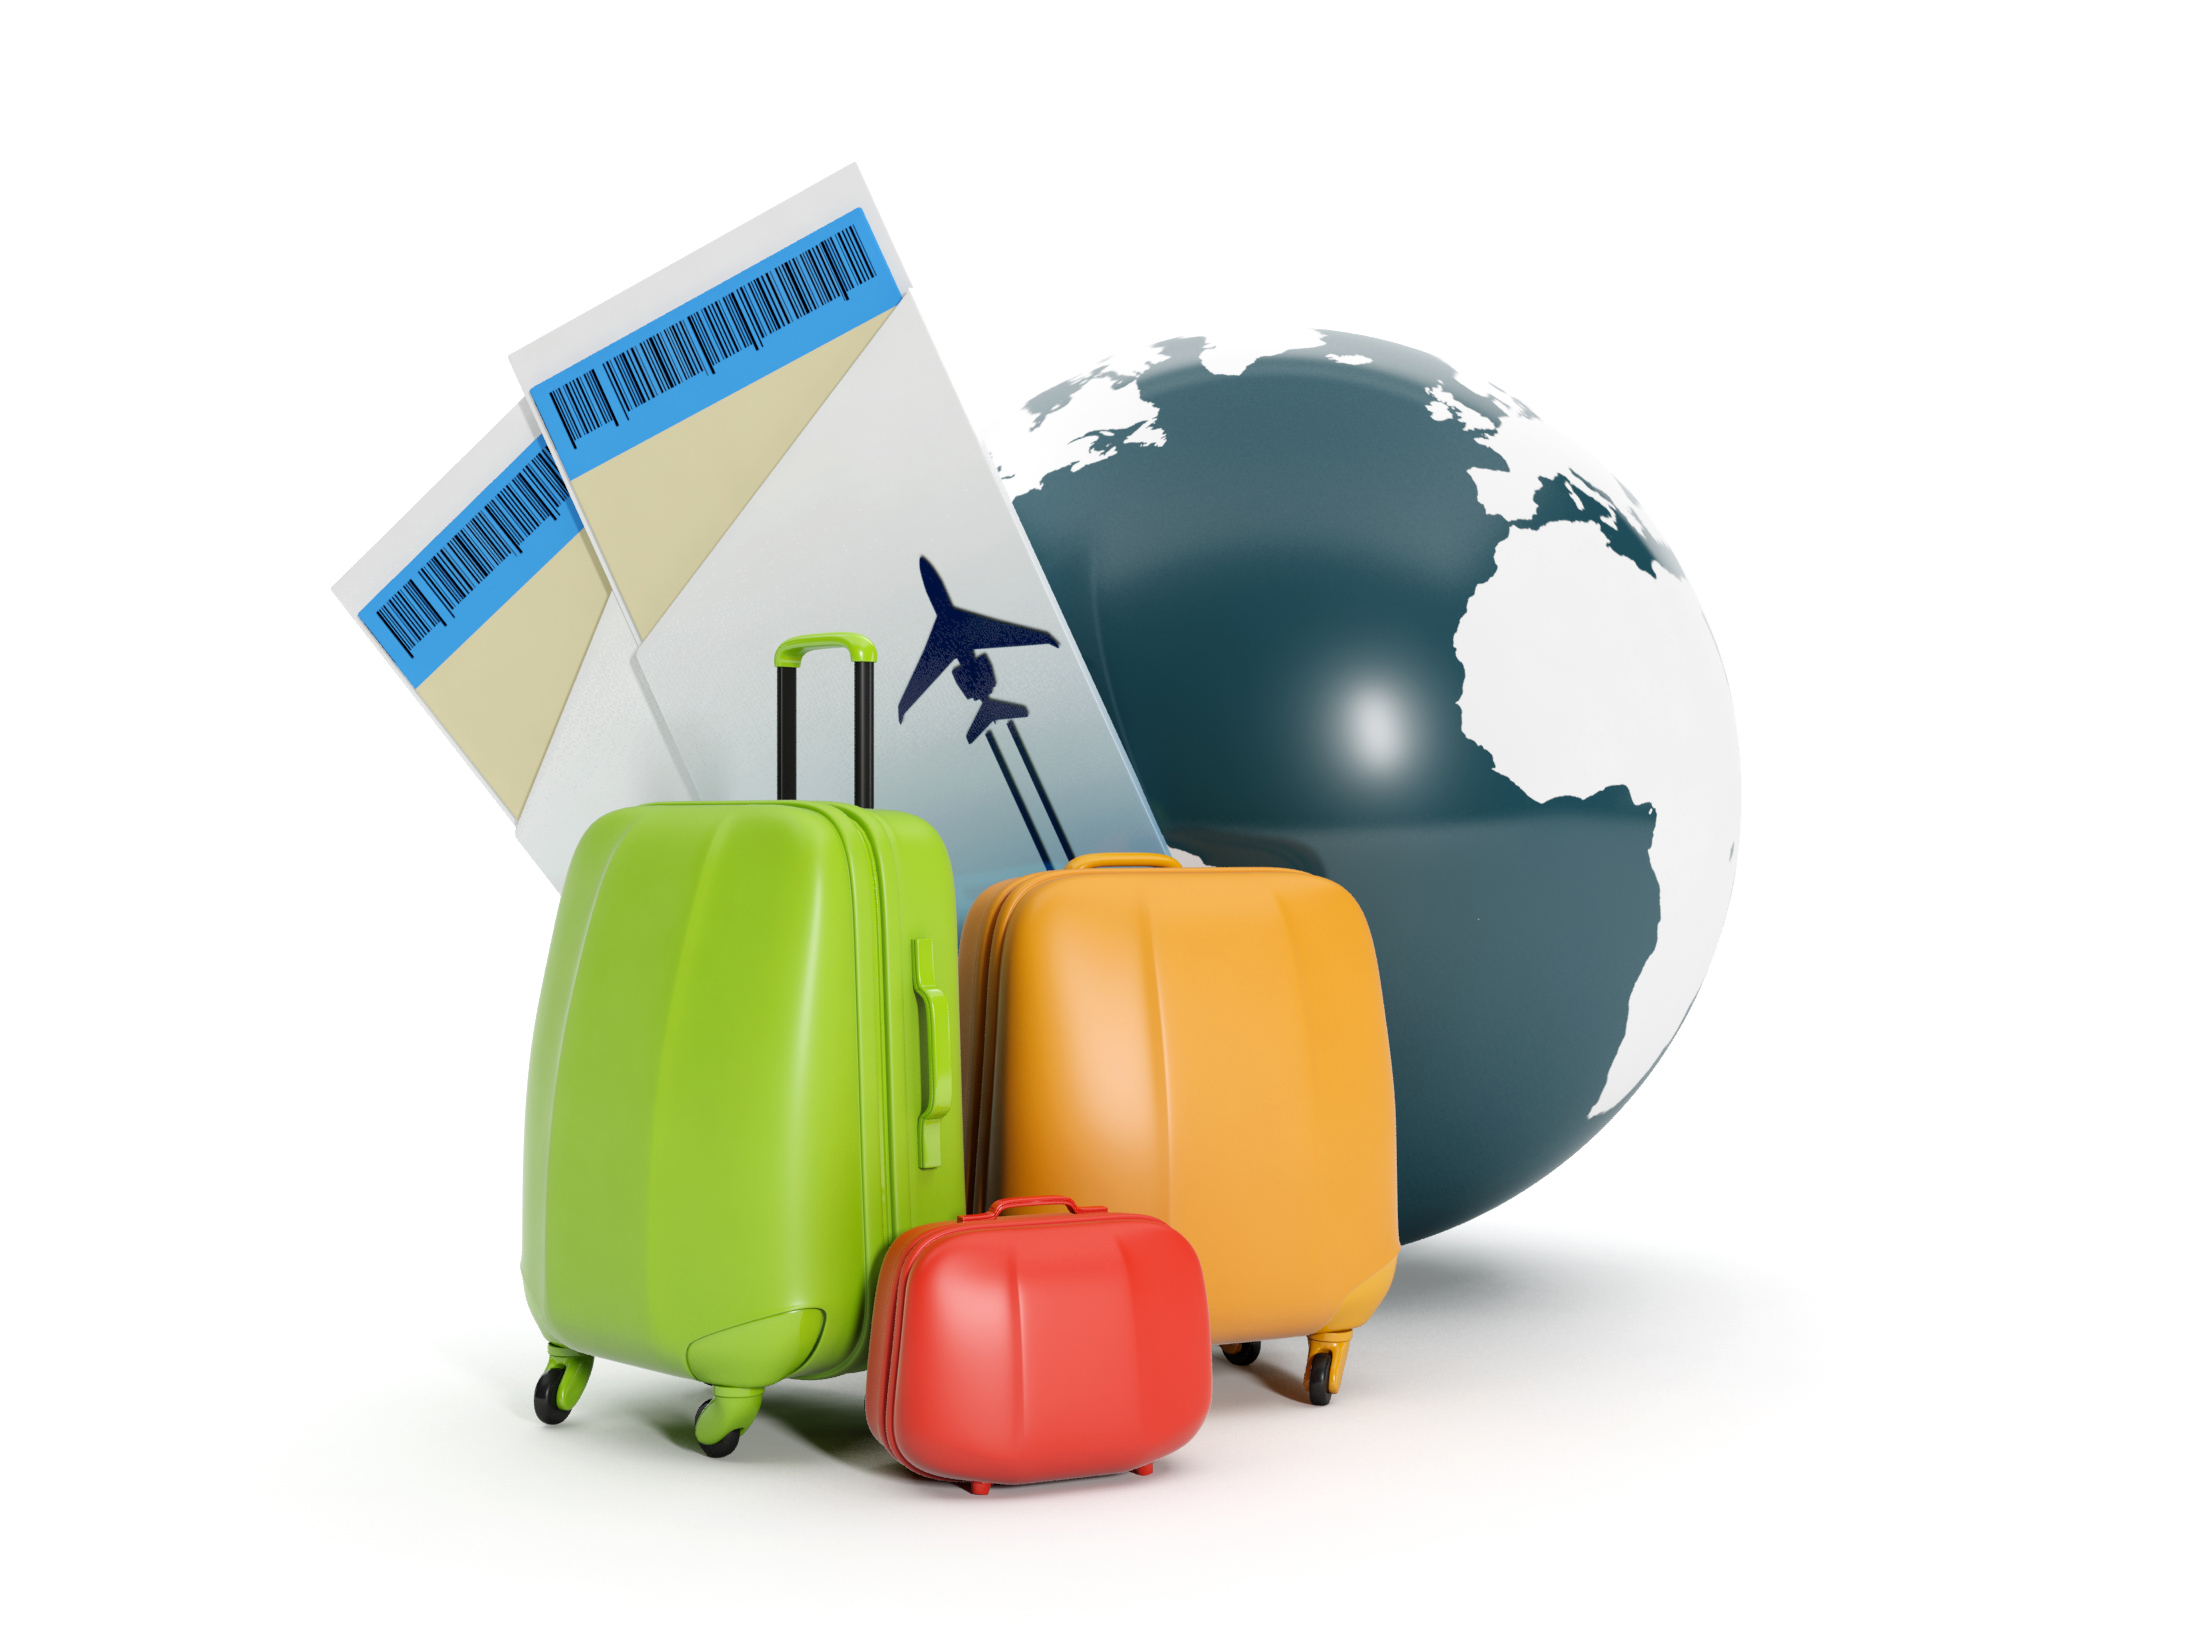 3d-illustration-land-and-a-group-of-suitcases-to-1412103.jpg